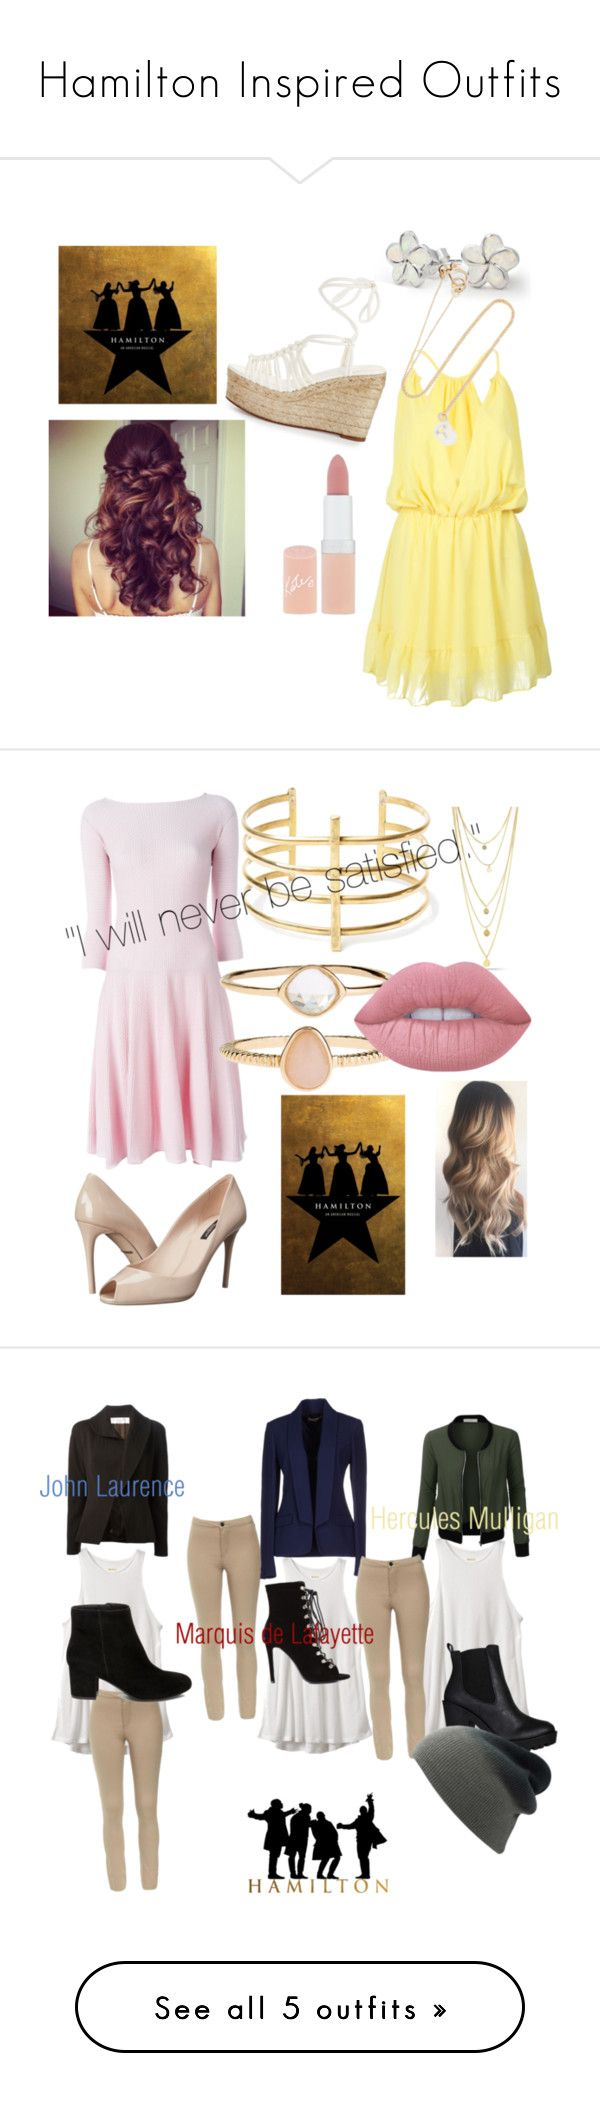 """Hamilton Inspired Outfits"" by diazd6879 ❤ liked on Polyvore featuring WithChic, Bling Jewelry, Sophie Bille Brahe, Chloé, Rimmel, Emporio Armani, Dolce&Gabbana, BauXo, Accessorize and Lime Crime"